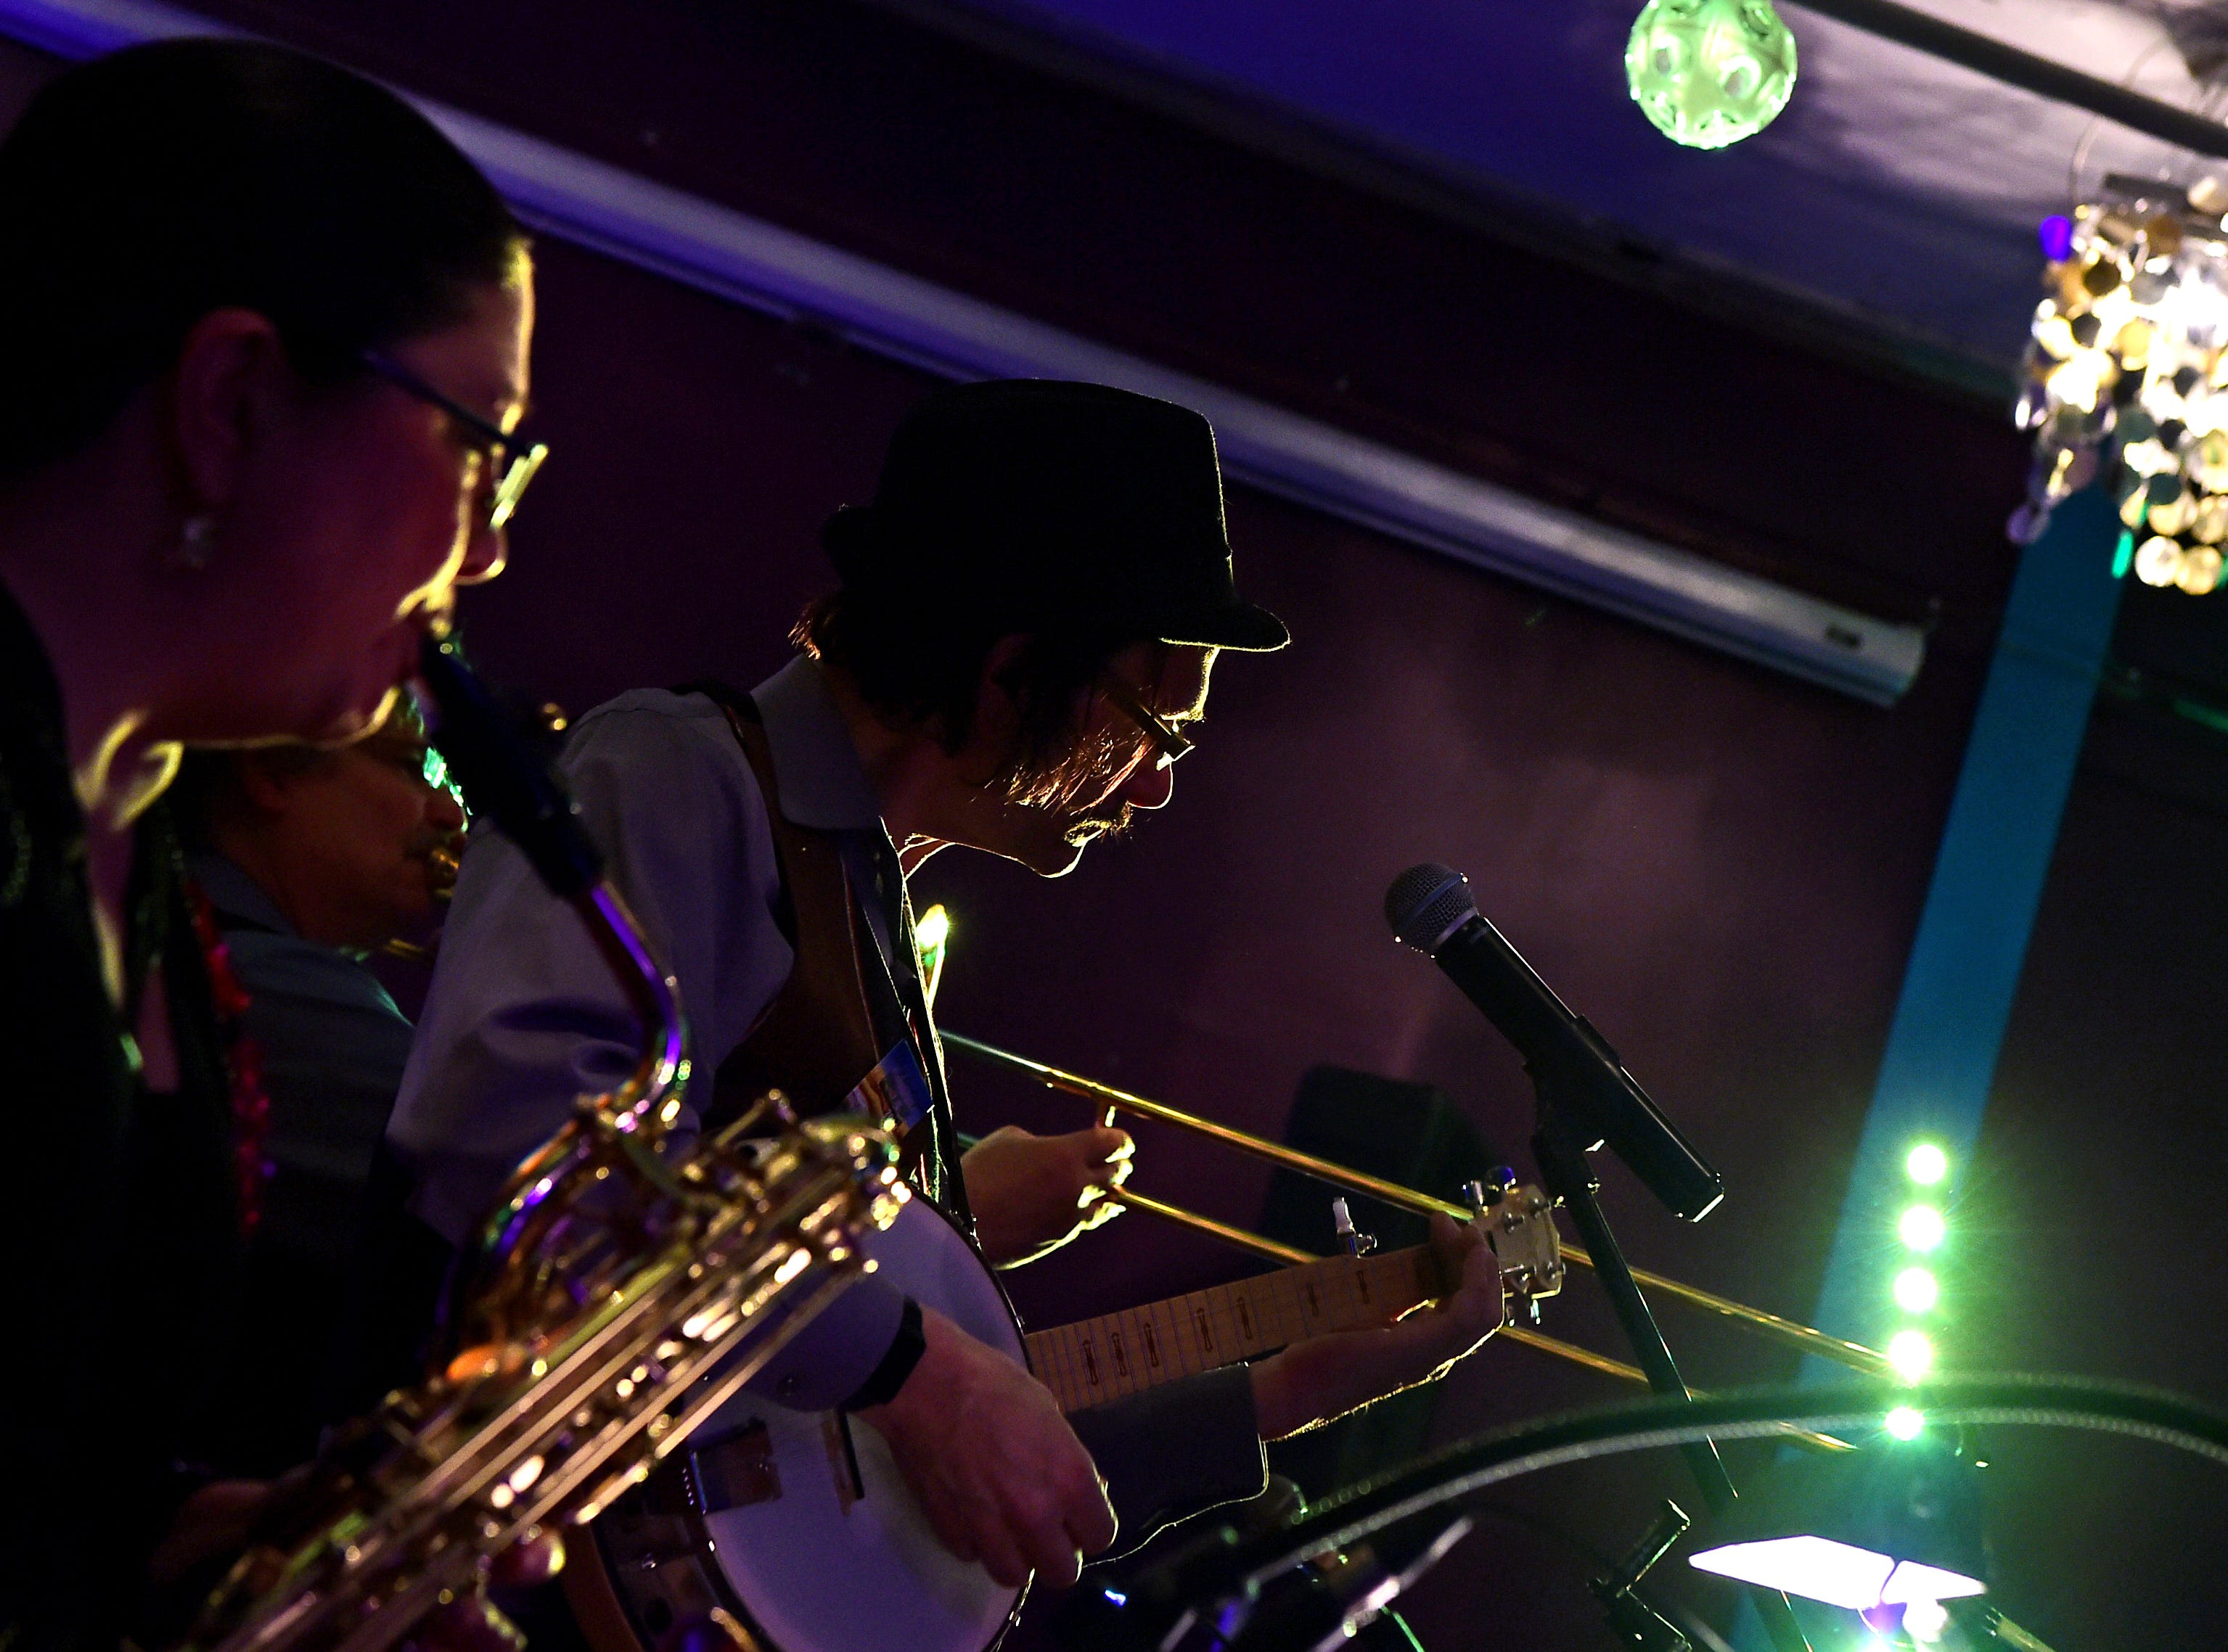 Basin Street Jazz Band entertains at the Lost Dog Cafe & Lounge in Binghamton during the 25th annual Rockin' Mardi Gras Celebration. March 5, 2019.